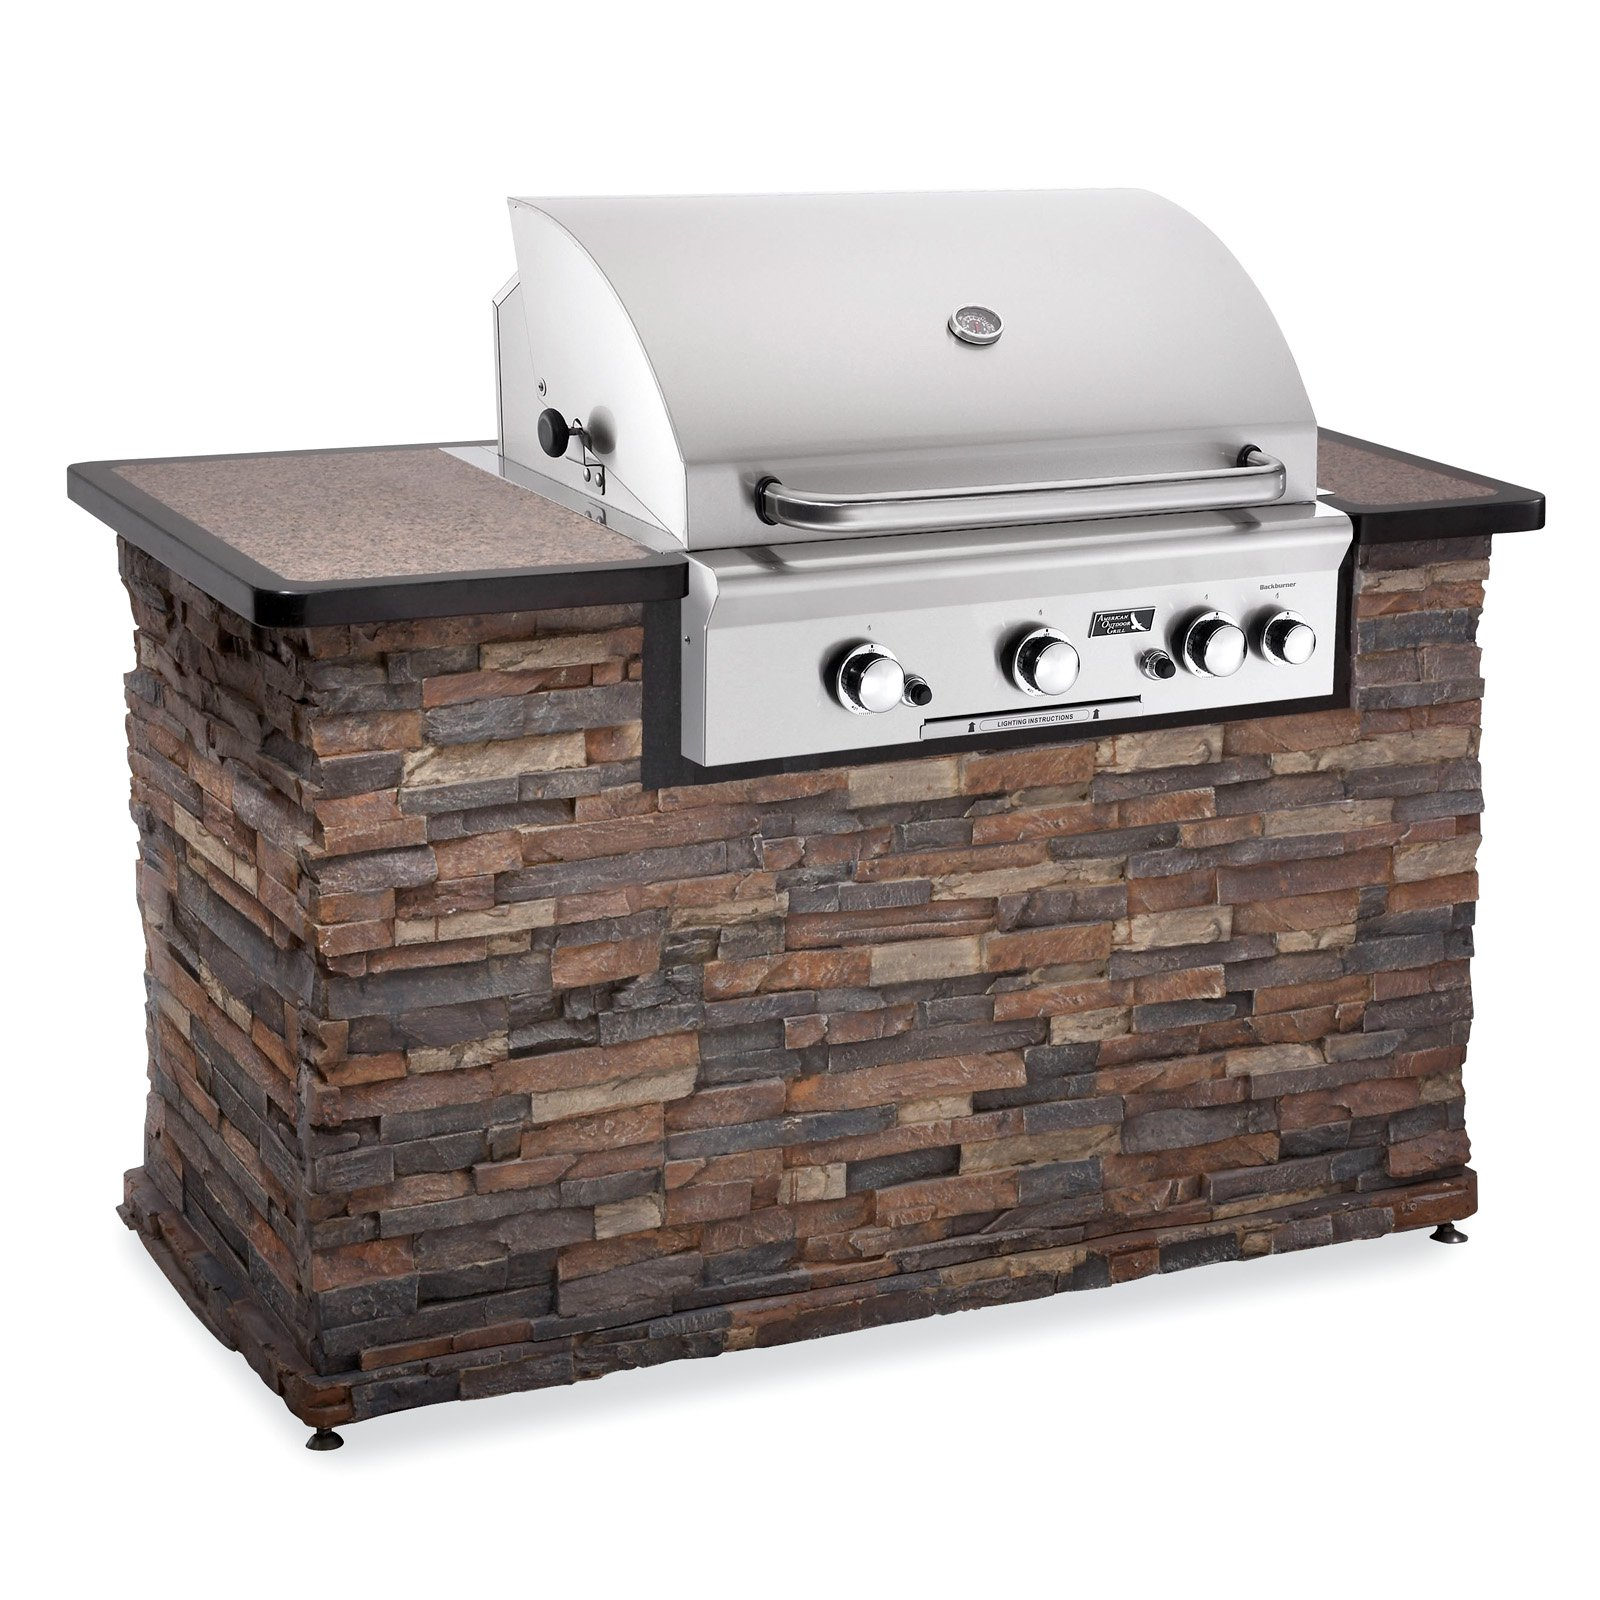 american outdoor grill 36 inch built-in gas grill - gas grills at hayneedle KGPHOLQ